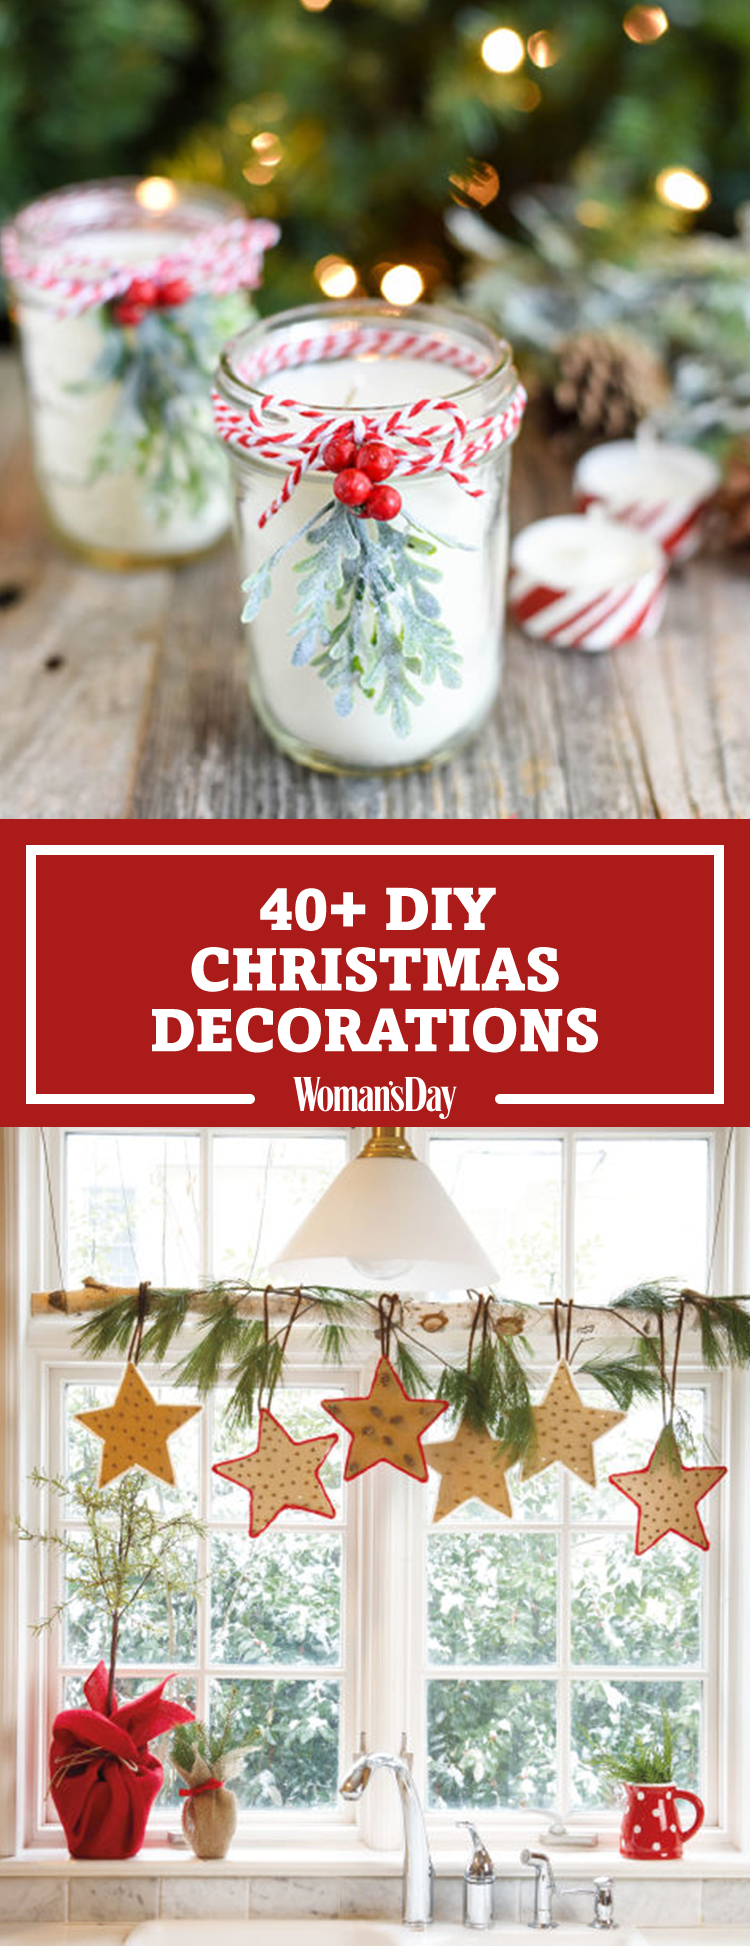 47 easy diy christmas decorations homemade ideas for Christmas decorating diy